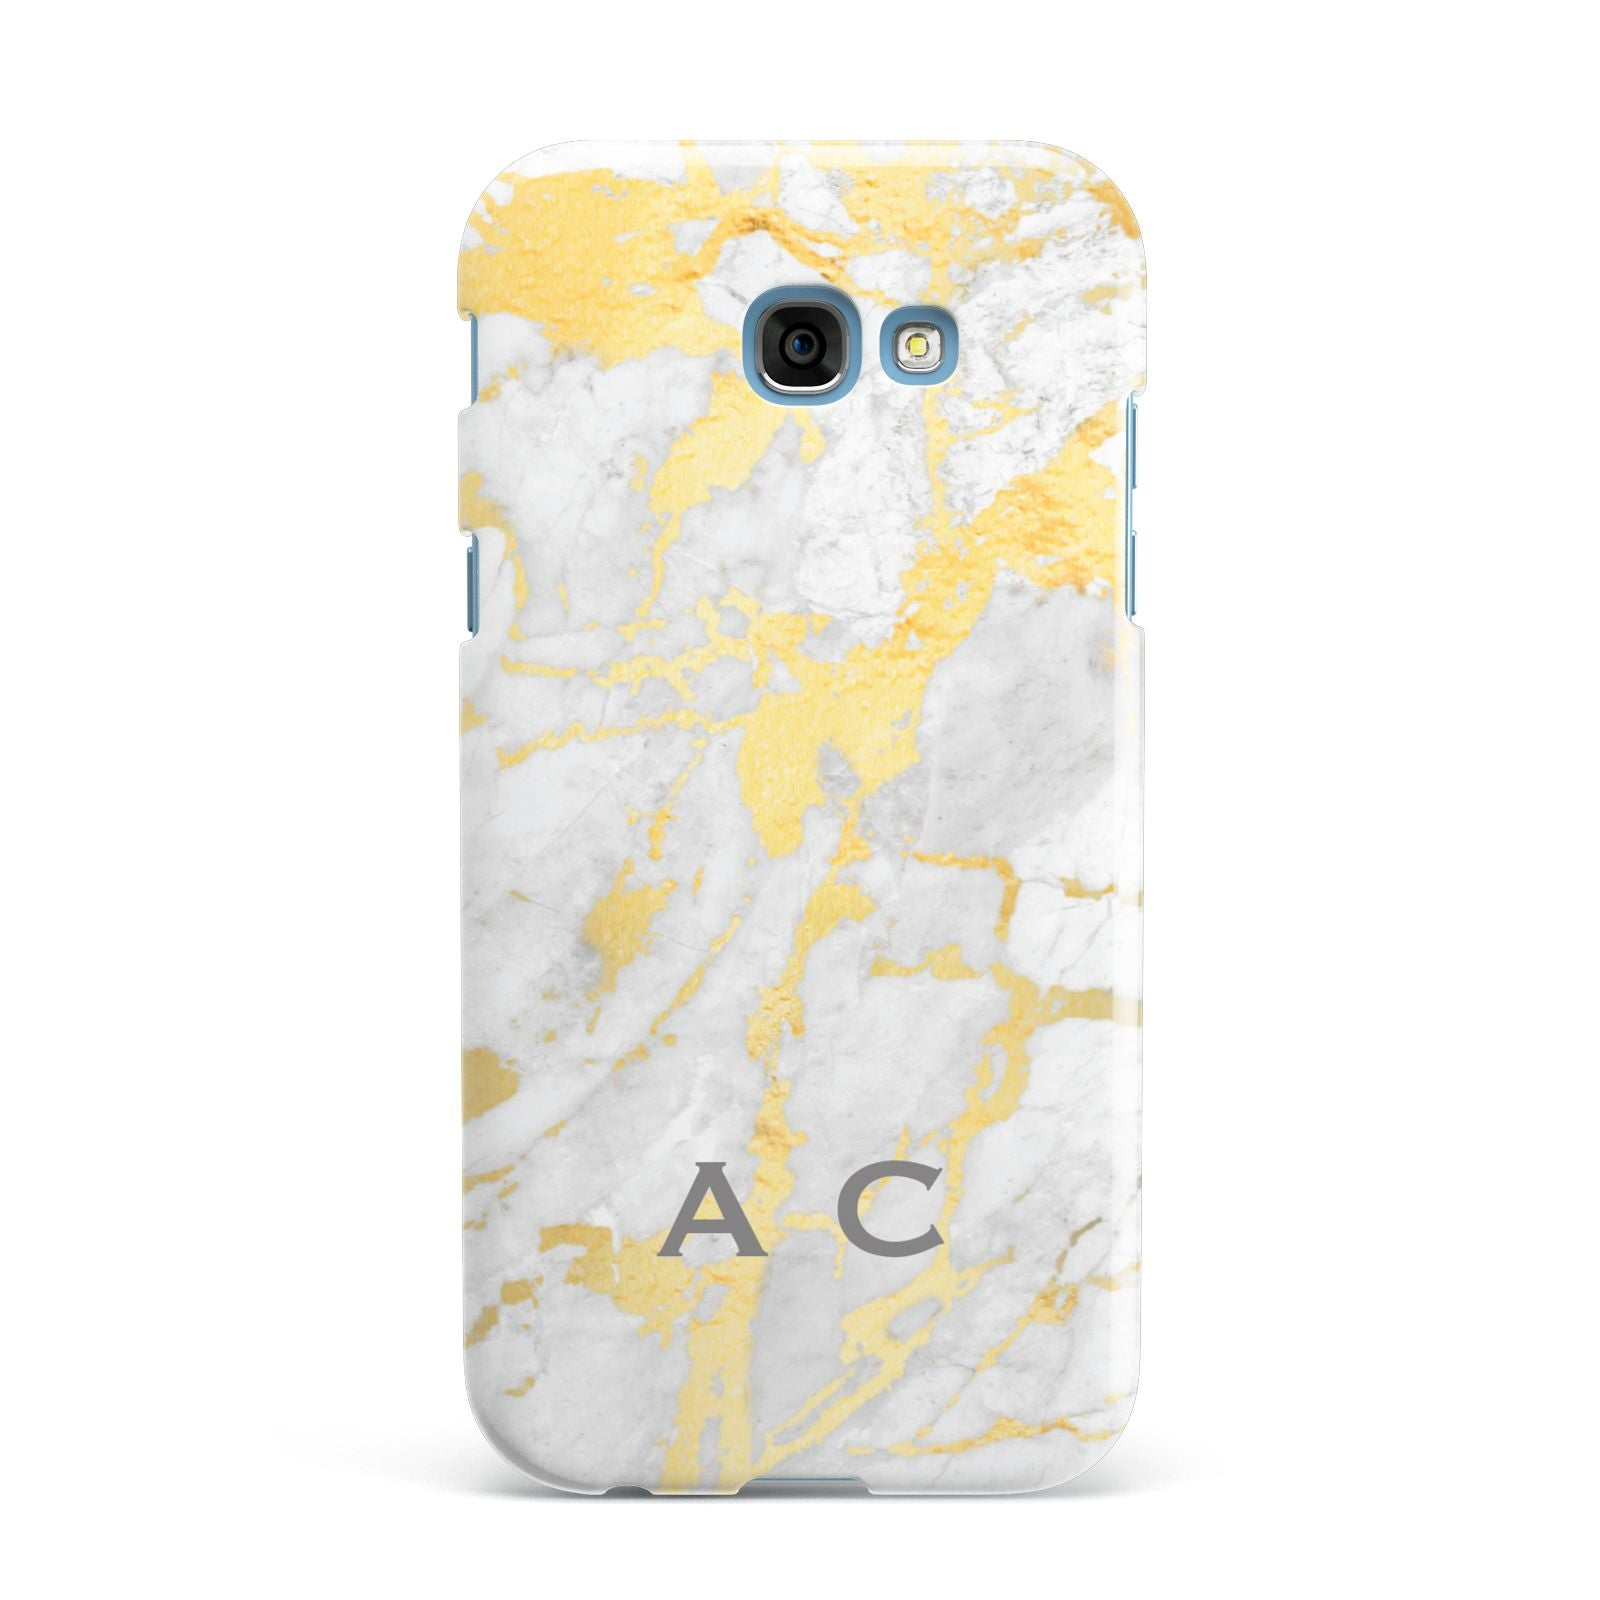 Gold Marble Initials Personalised Samsung Galaxy A7 2017 Case